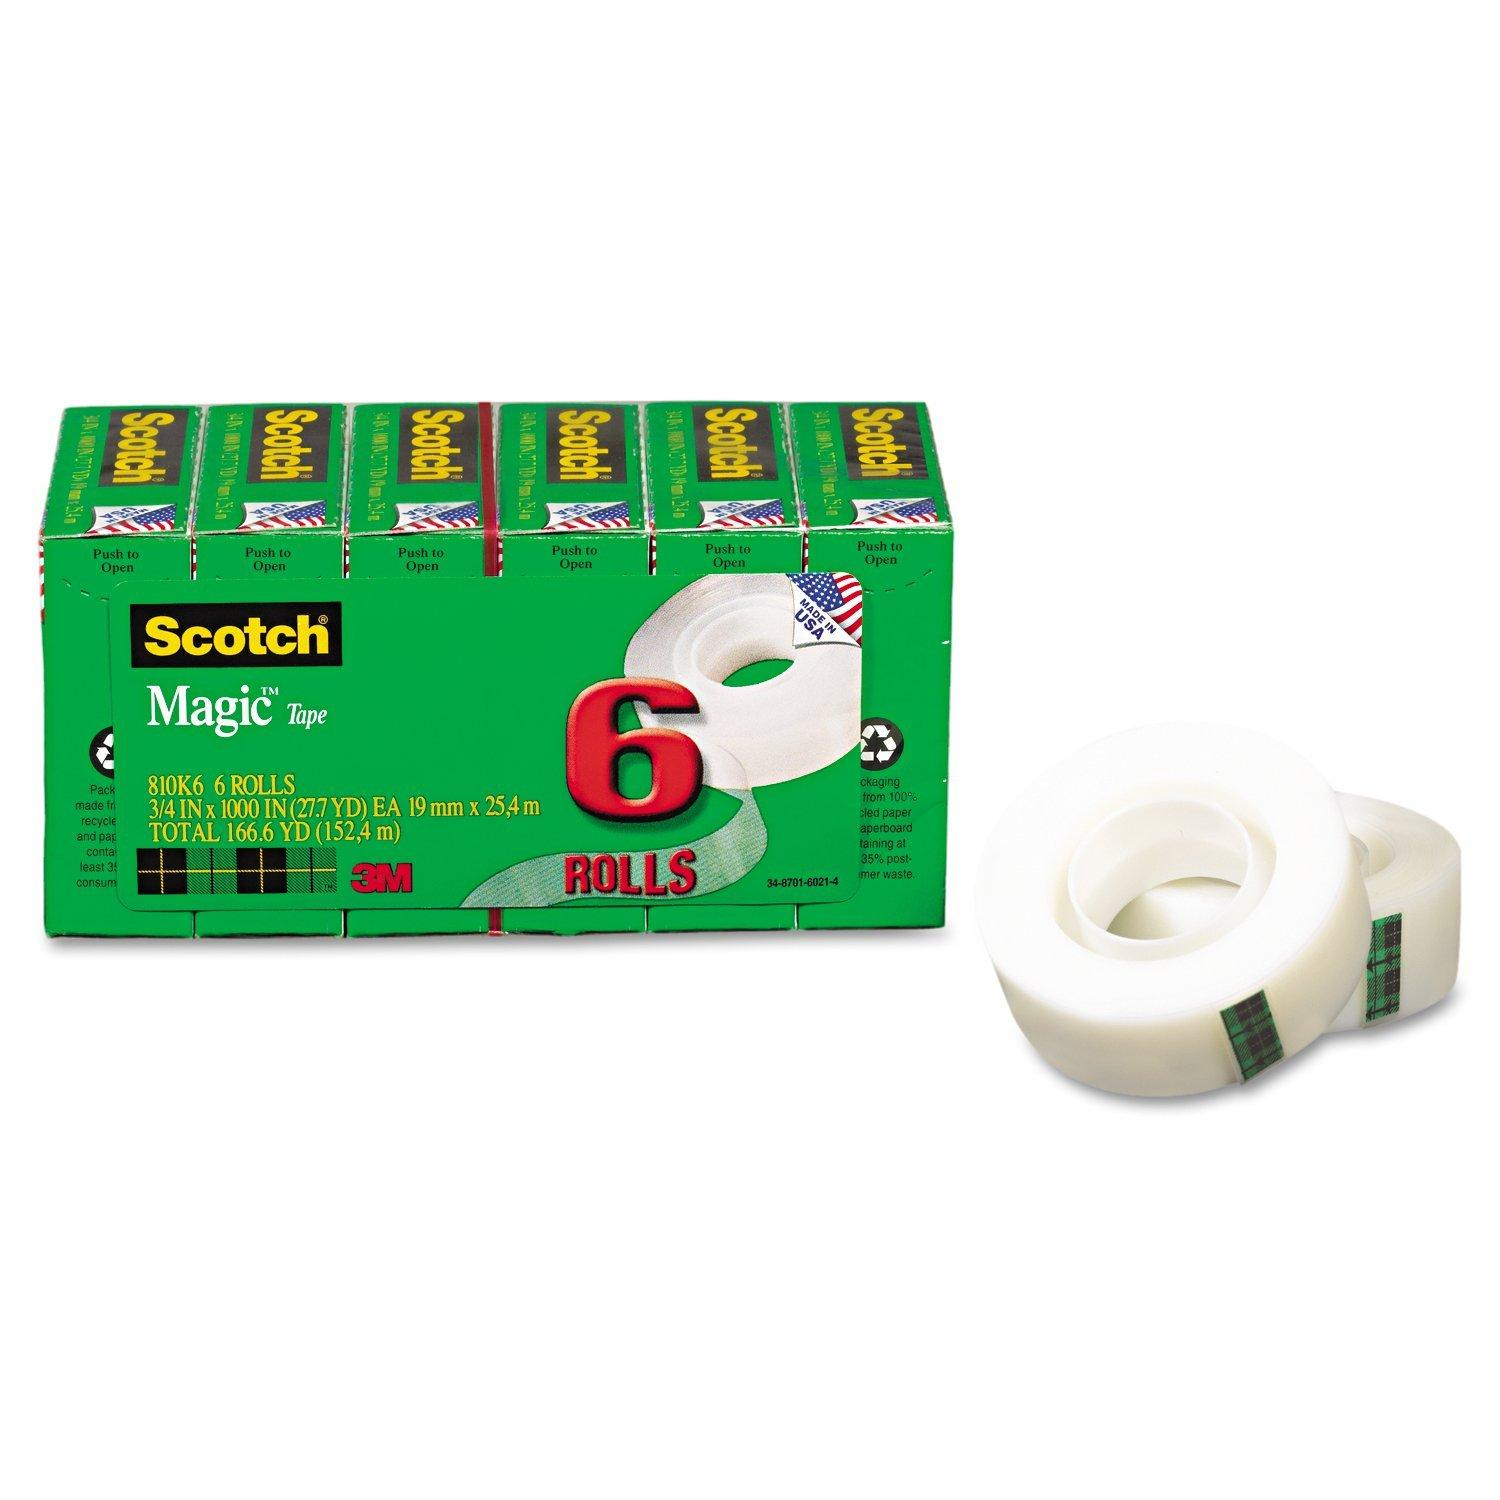 Scotch Magic Tape, 3/4 x 1000 Inches, 6-Count Package (810K6)